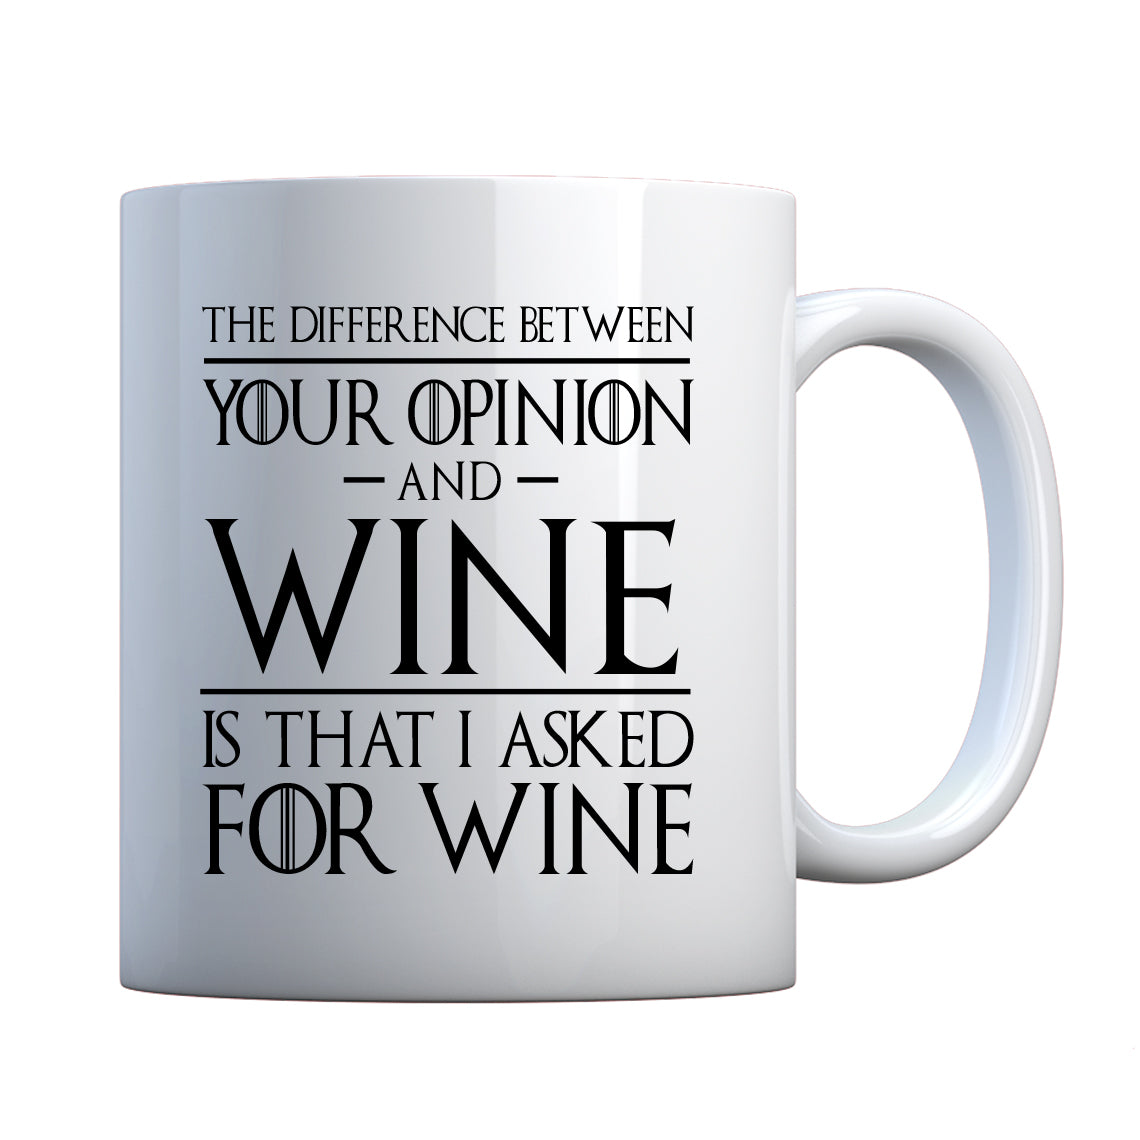 Mug Your Opinion and Wine Ceramic Gift Mug